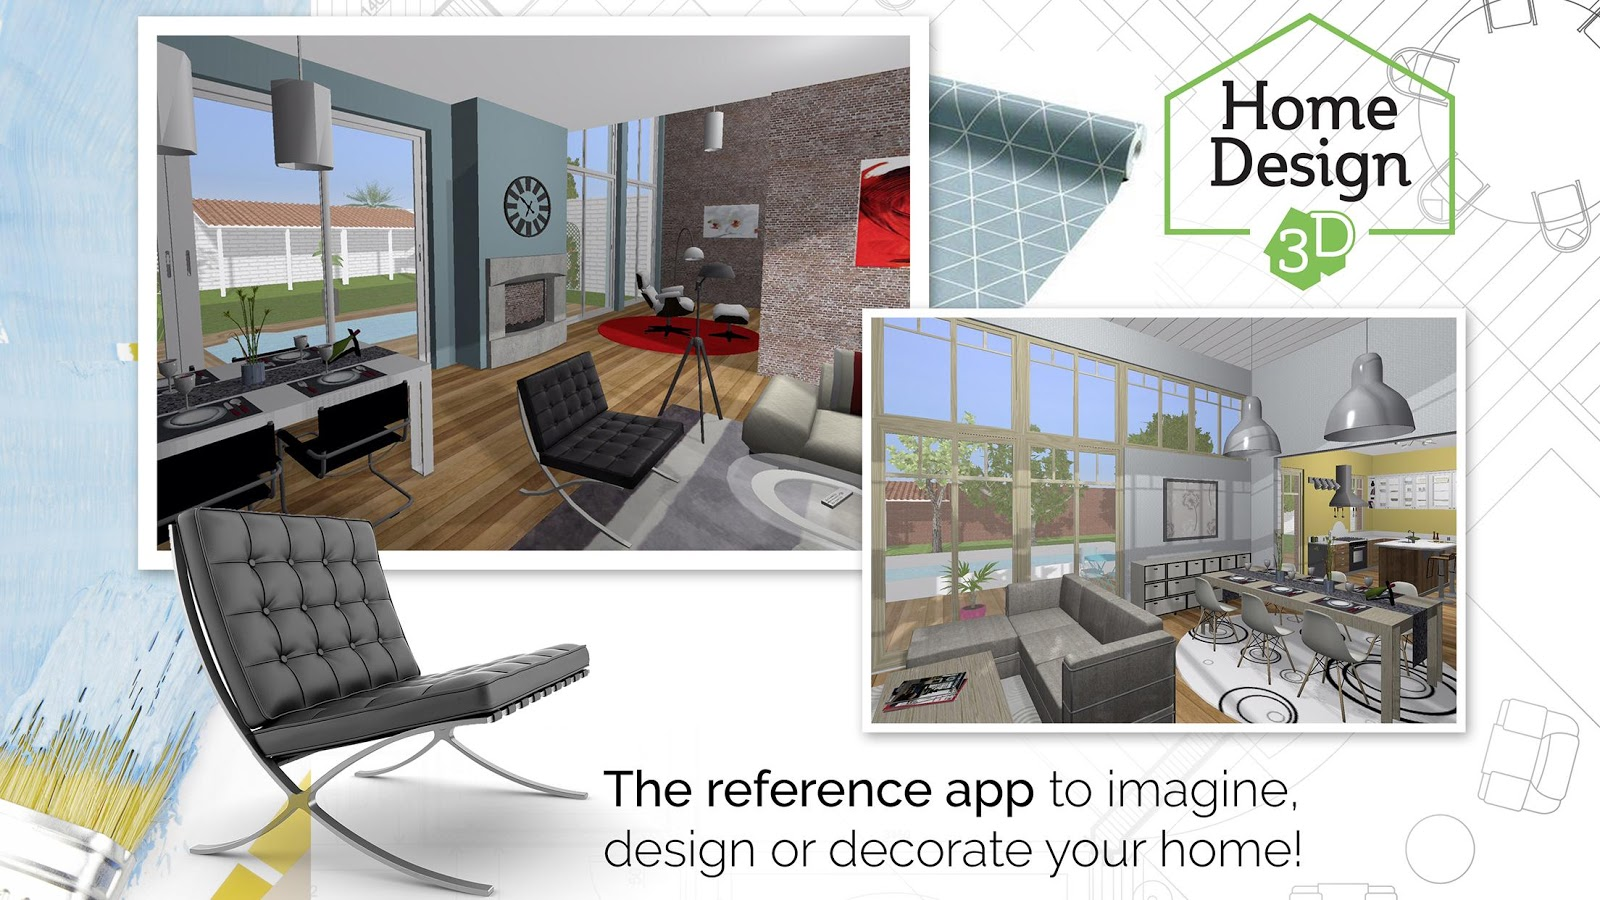 Home design 3d freemium android apps on google play for How to design 3d house plans